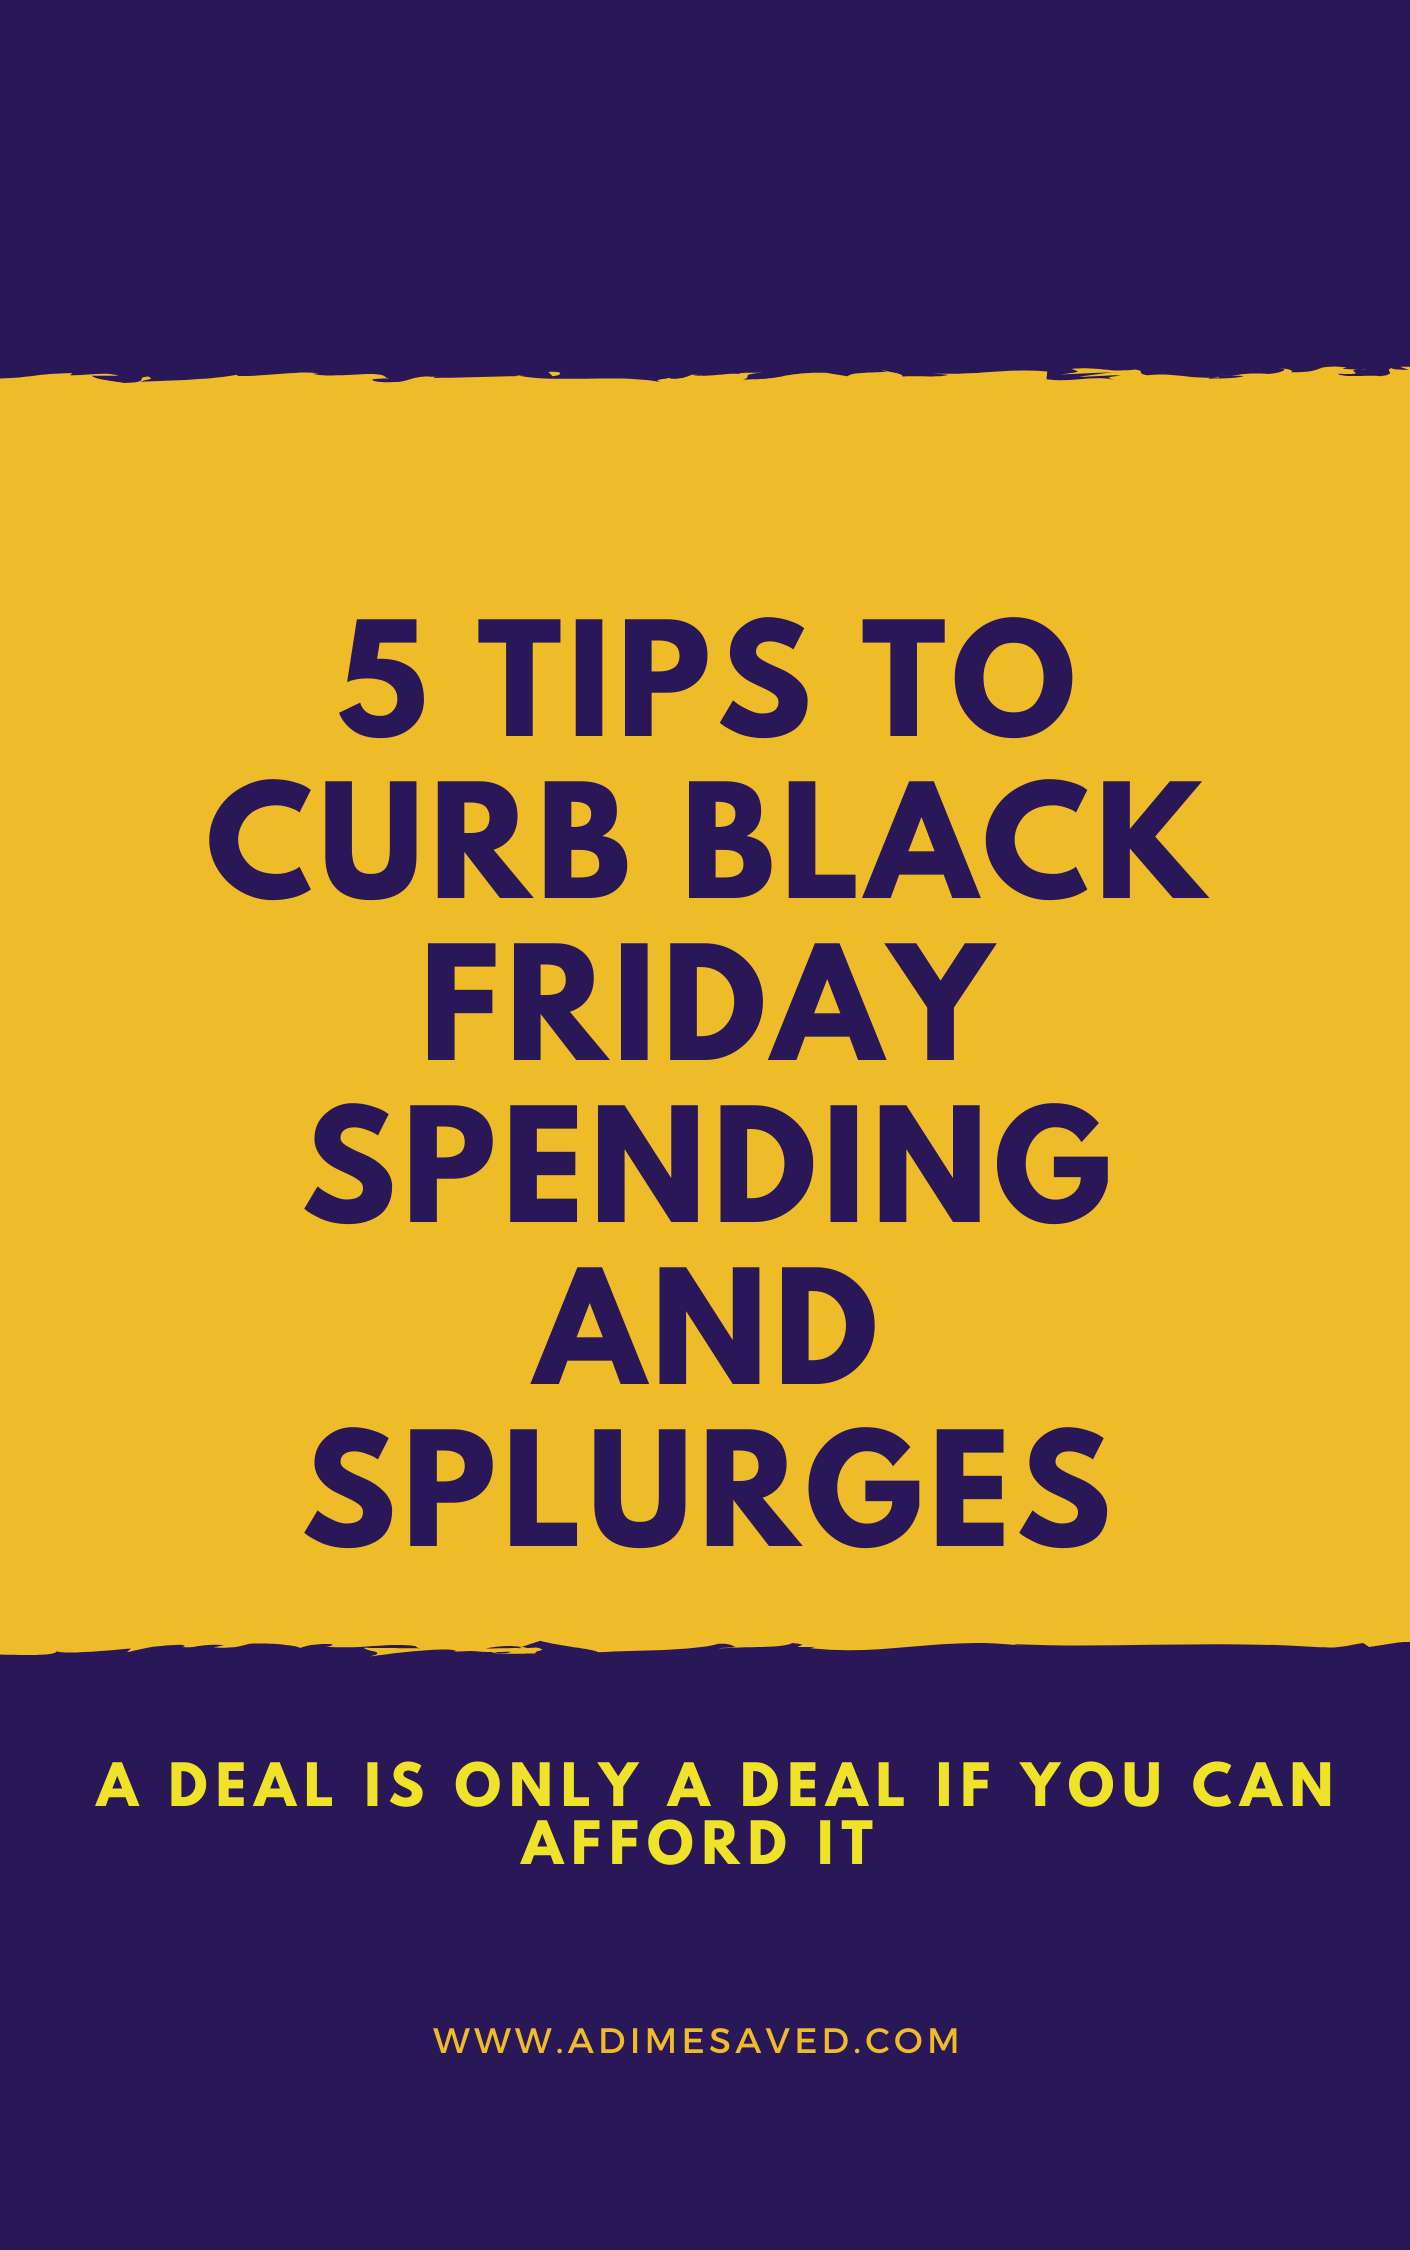 5 tips to curb black friday spending